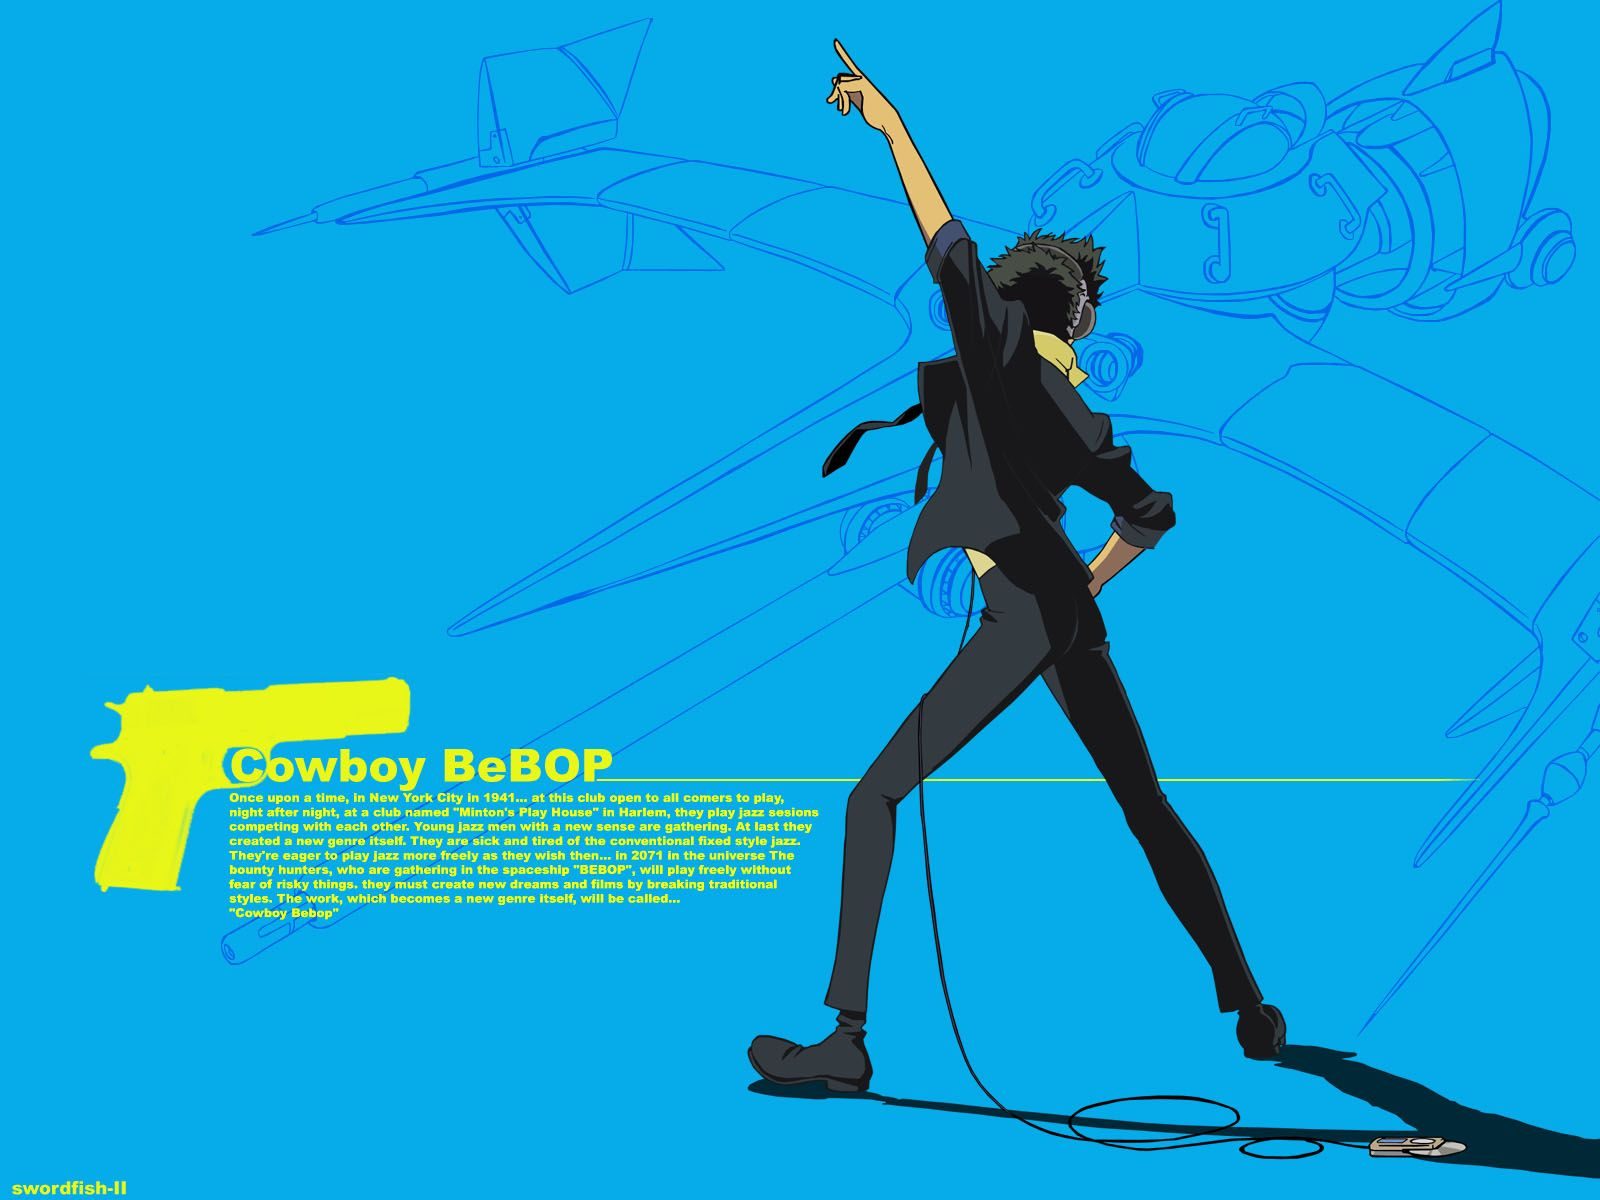 Spike Spiegel And Swordfish 2 wallpaper Cowboy Bebop